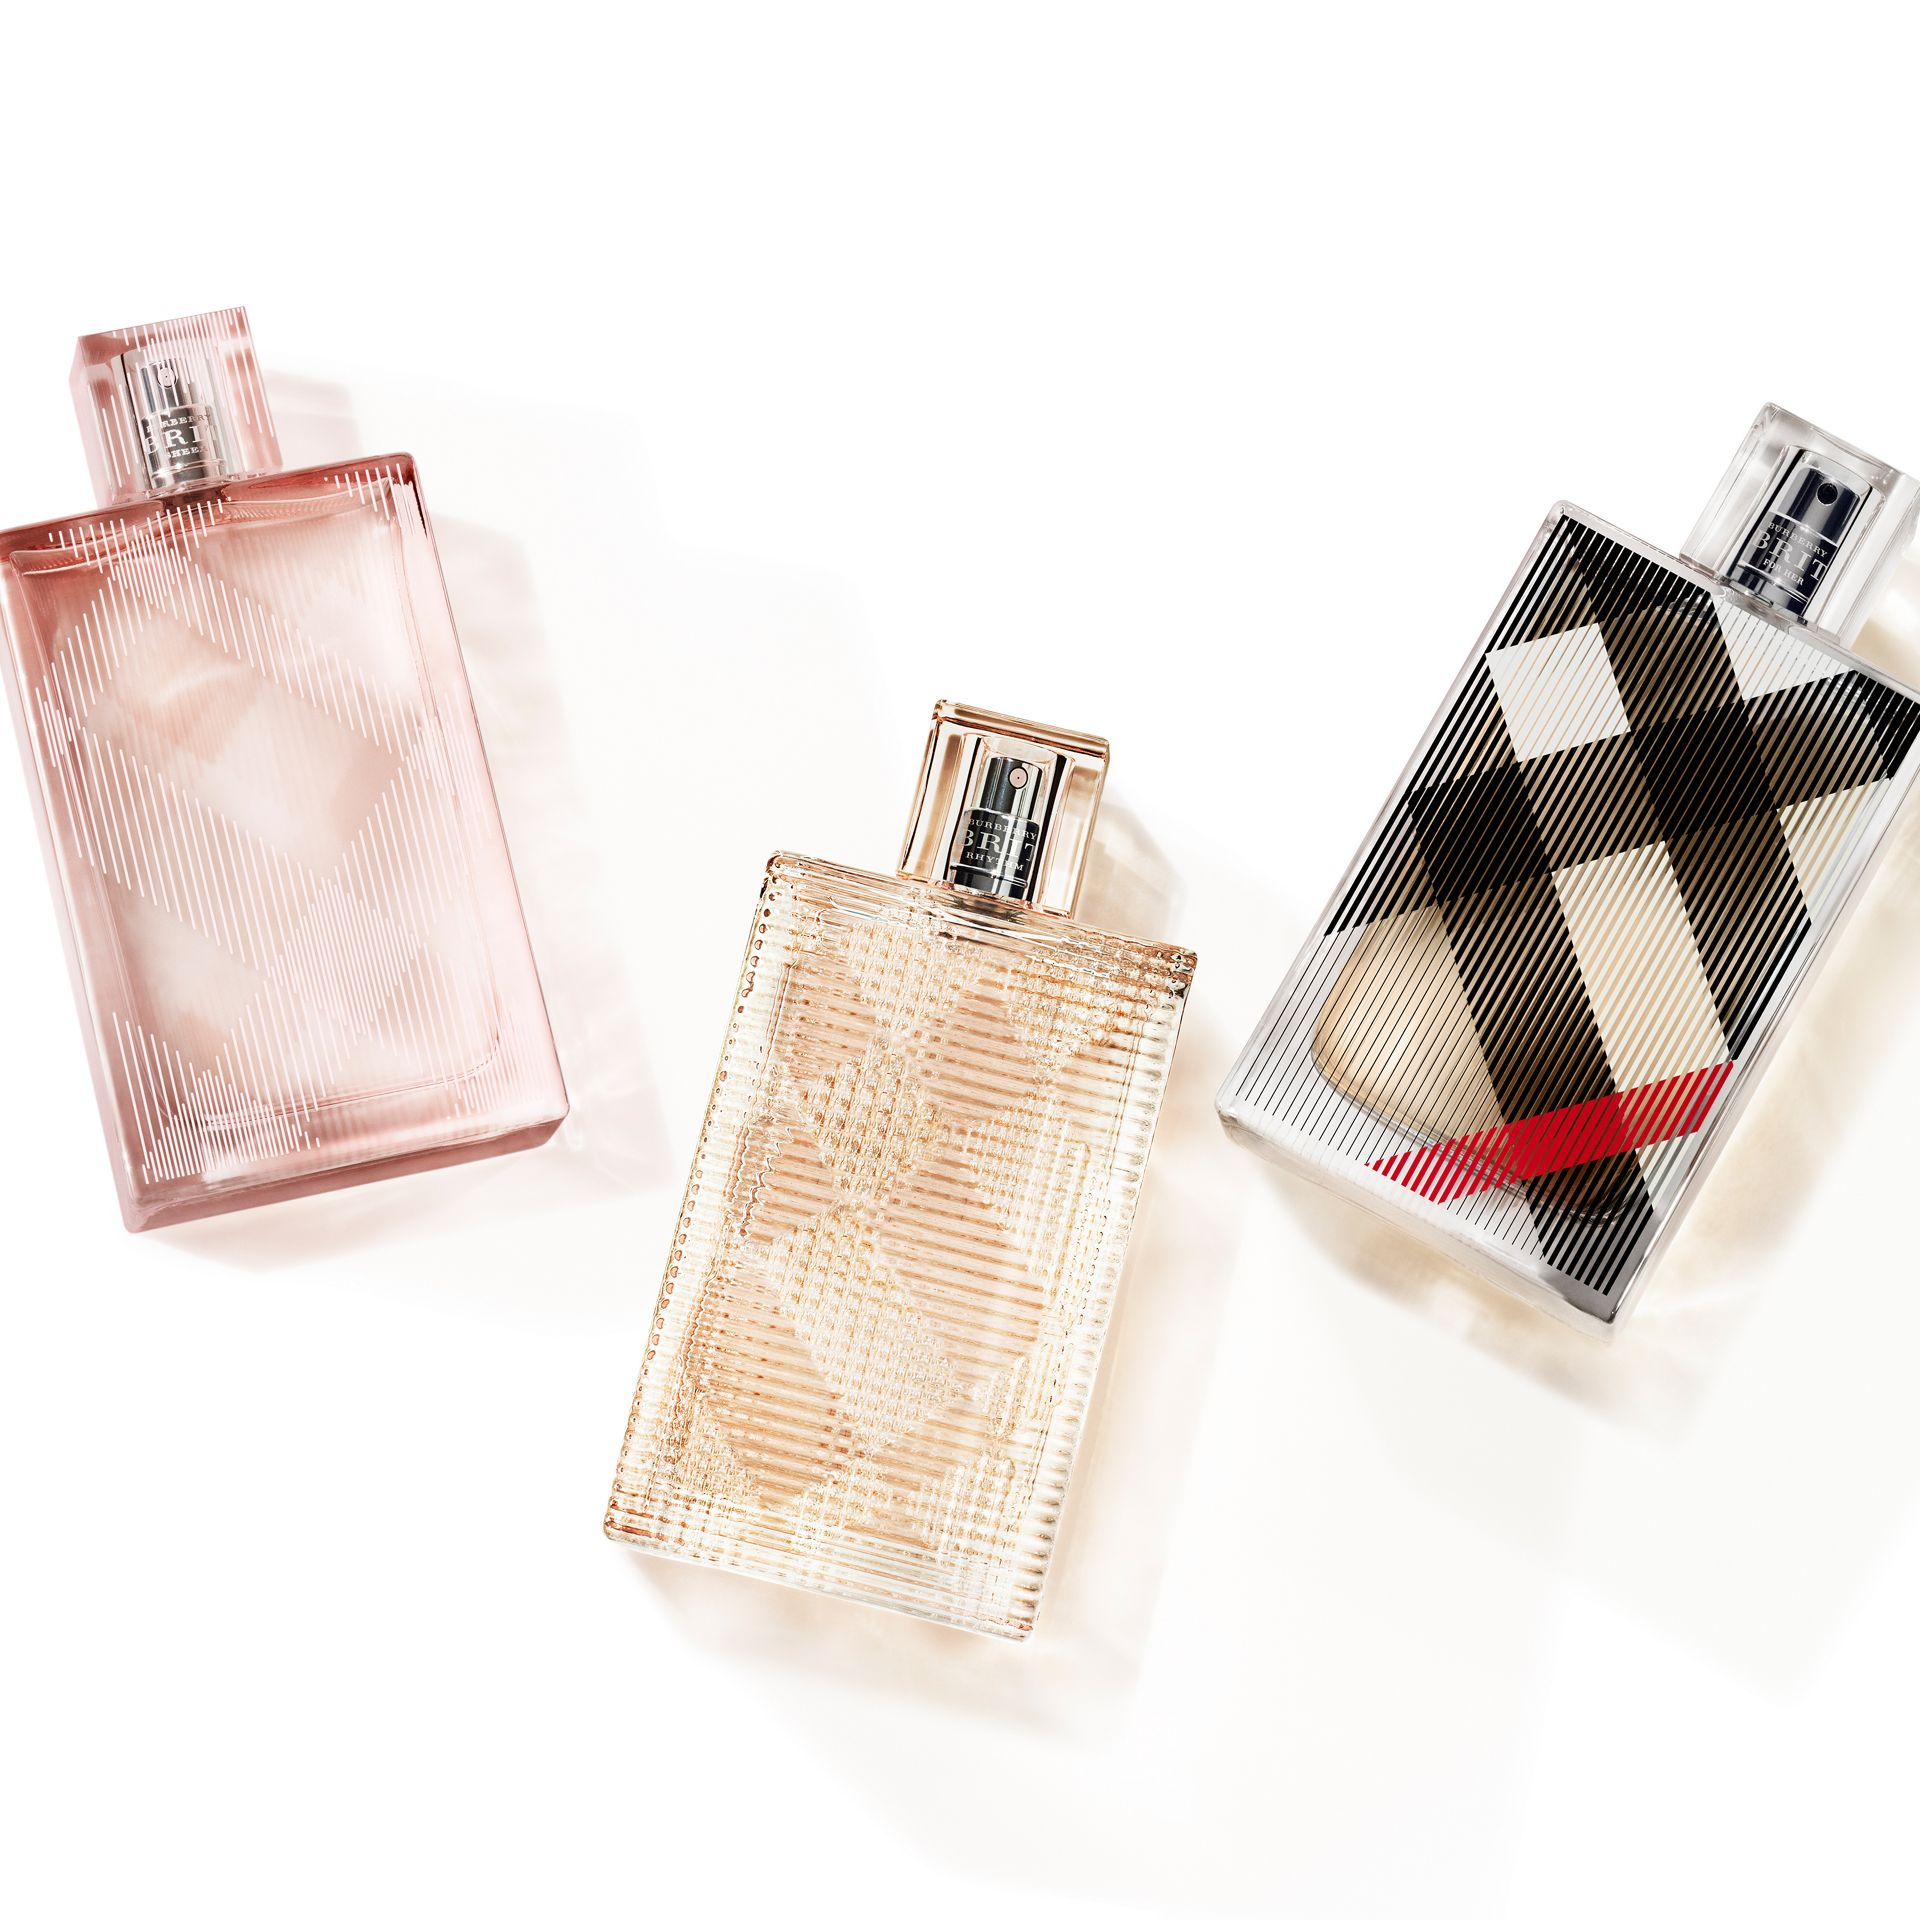 Burberry Brit For Her Eau de Parfum 30ml - Women | Burberry - gallery image 2